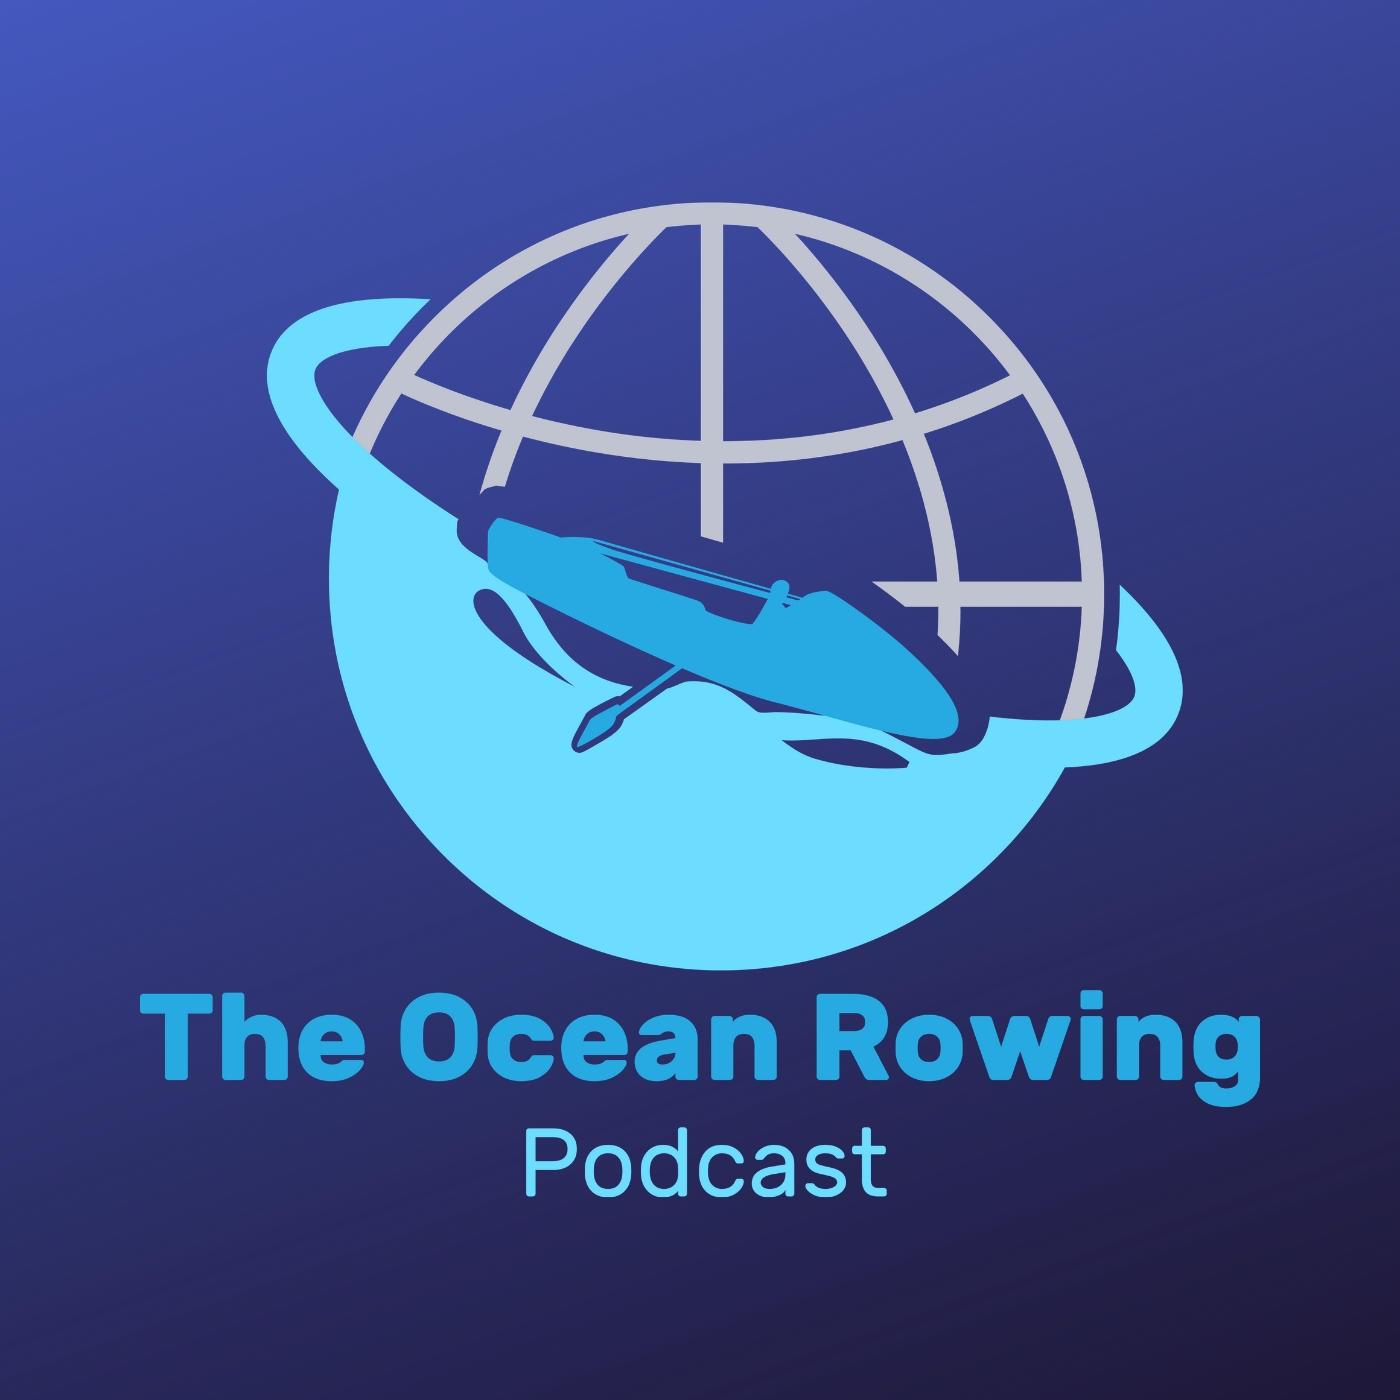 The Ocean Rowing Podcast show art